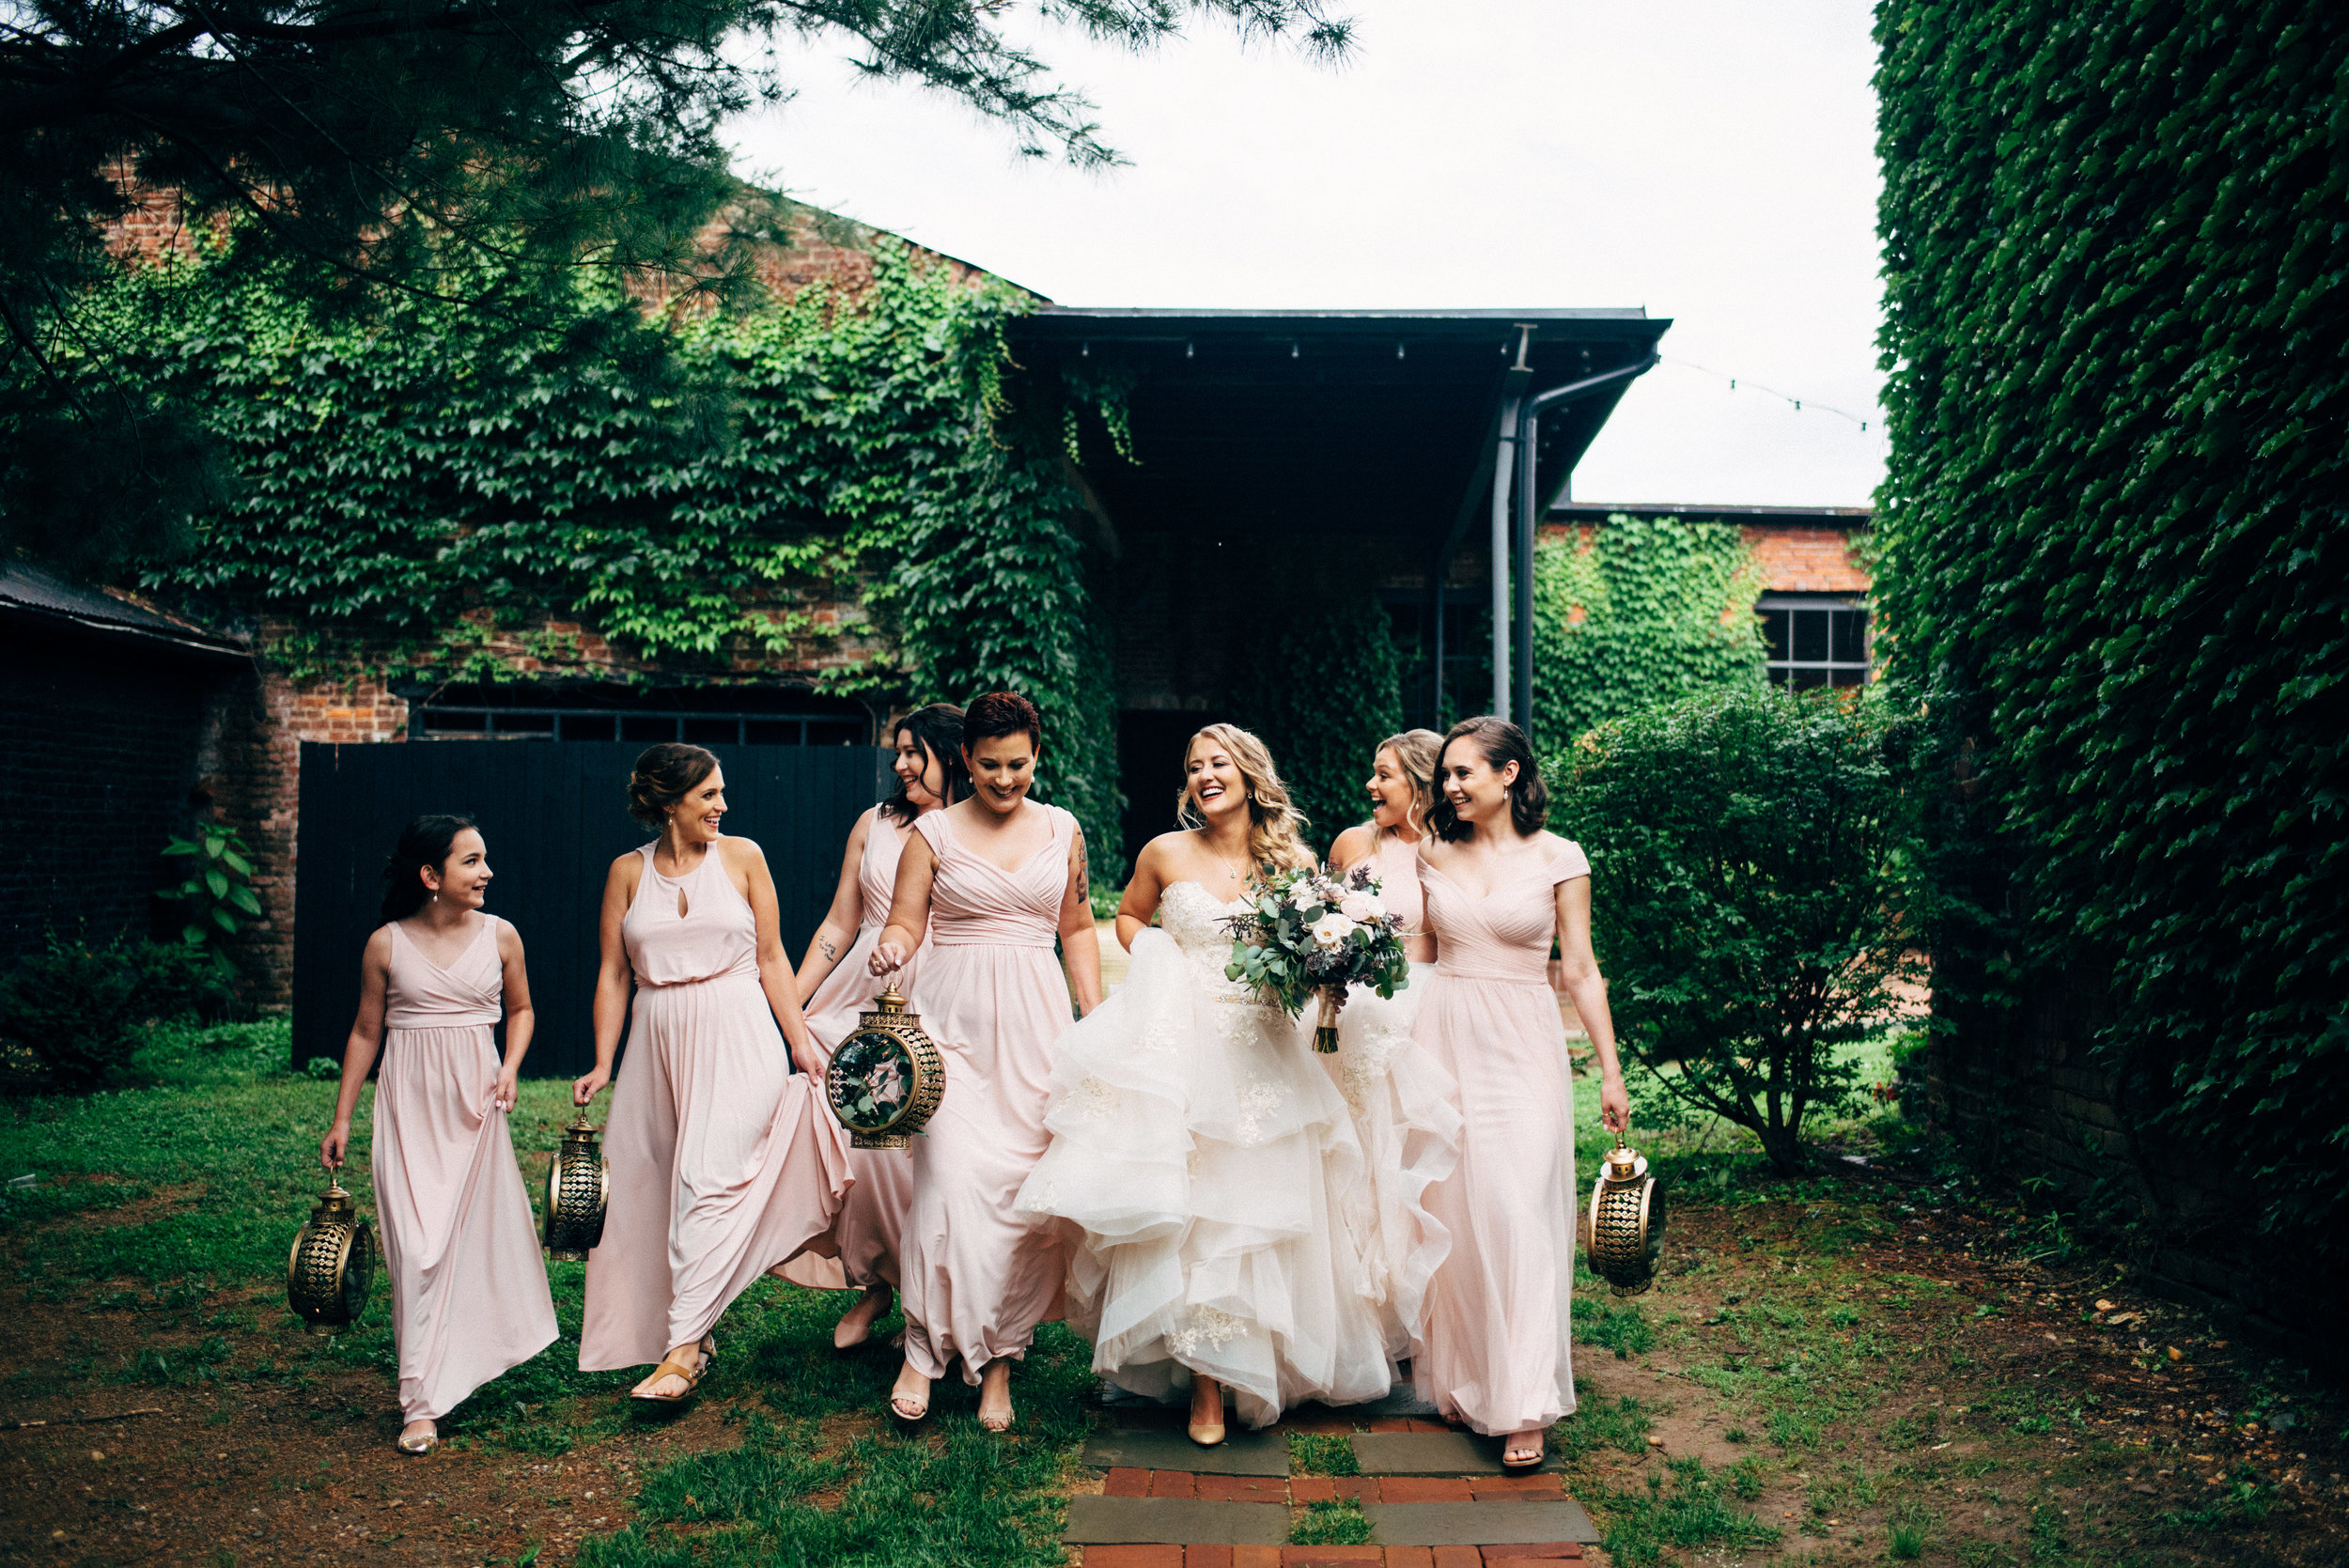 bride laughing and walking down path with her bridesmaids in front of ivy covered building